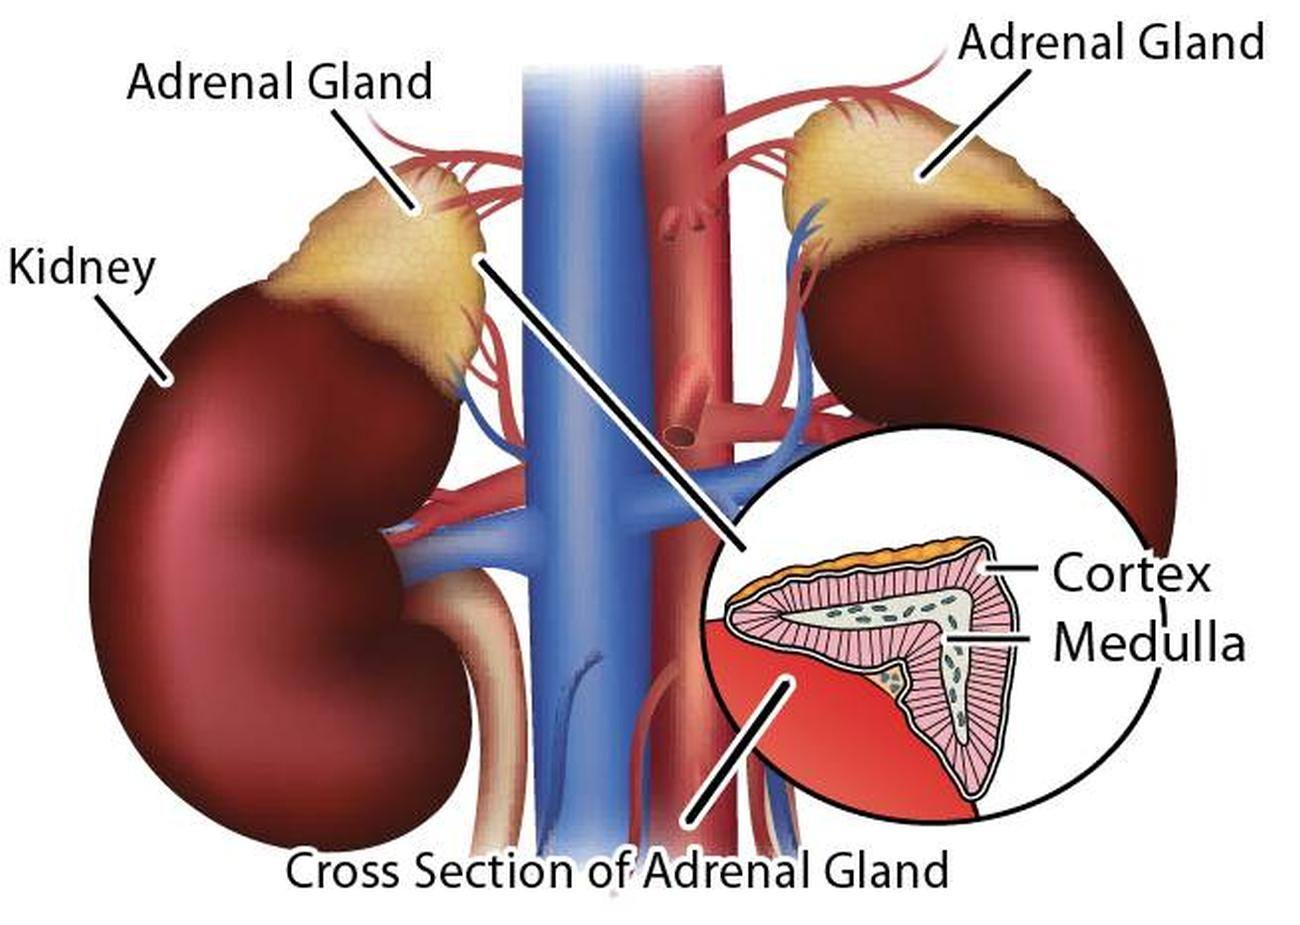 Adrenal gland weight loss